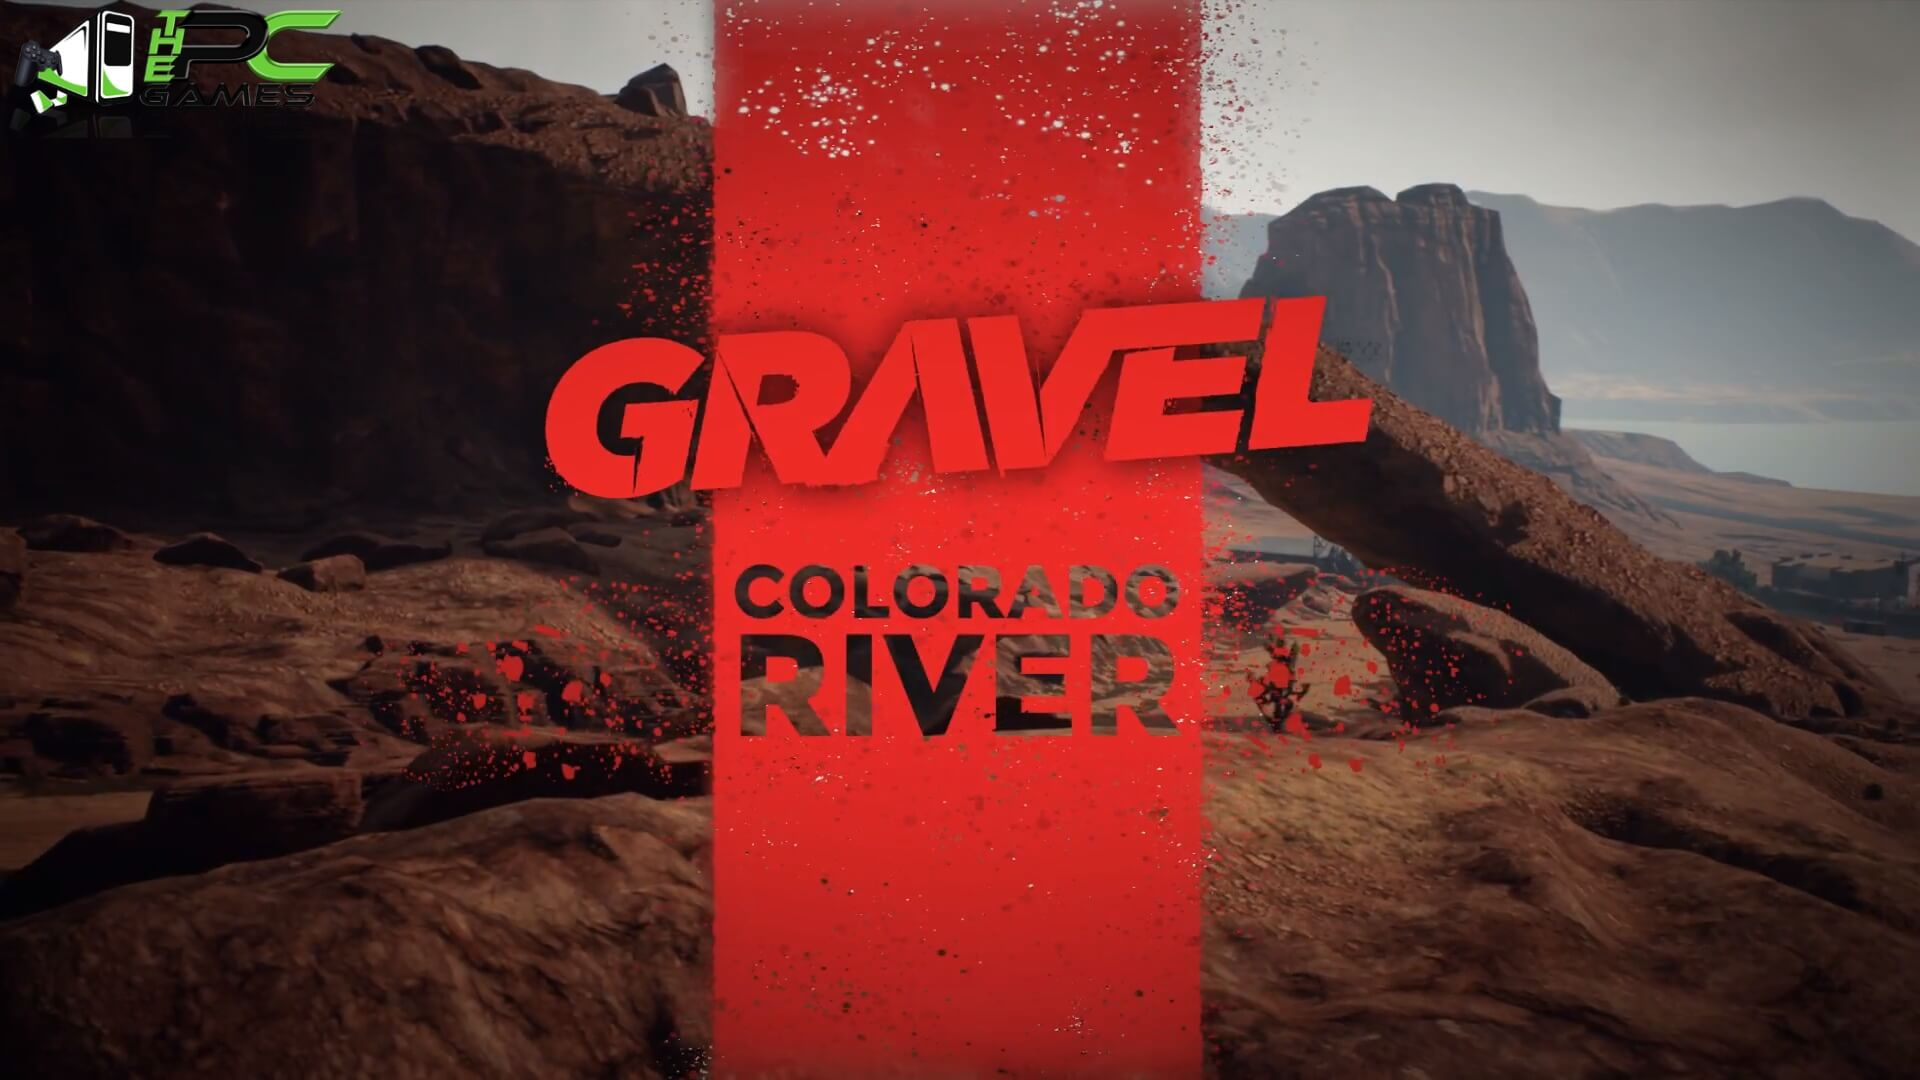 Gravel Colorado River game free download